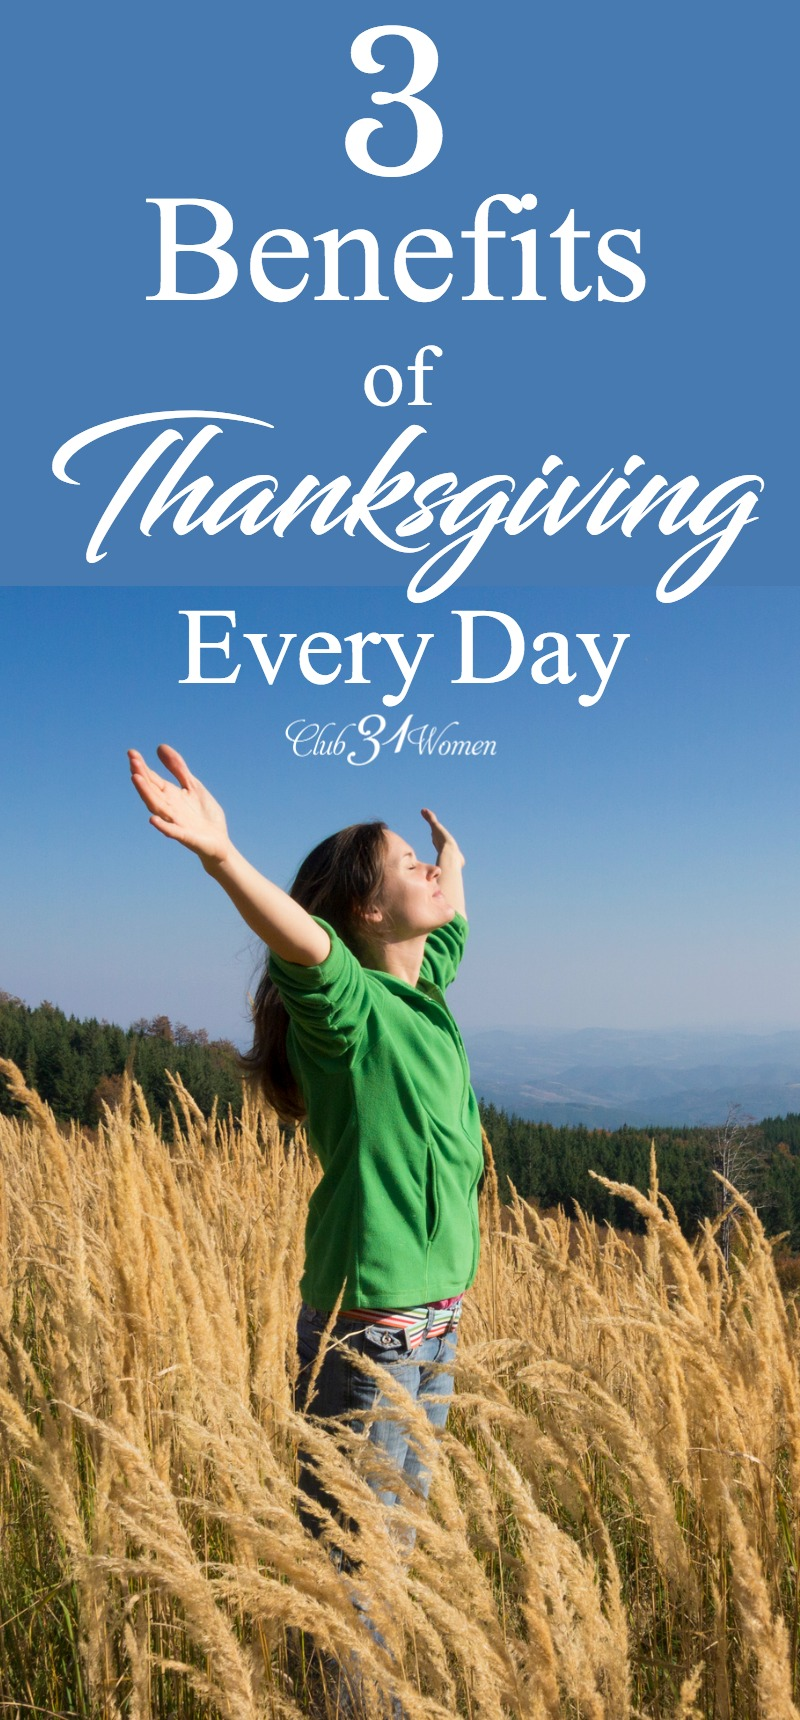 Thanksgiving shouldn't only happen one time or even one season of the year. We can have an attitude of thanksgiving every day. via @Club31Women